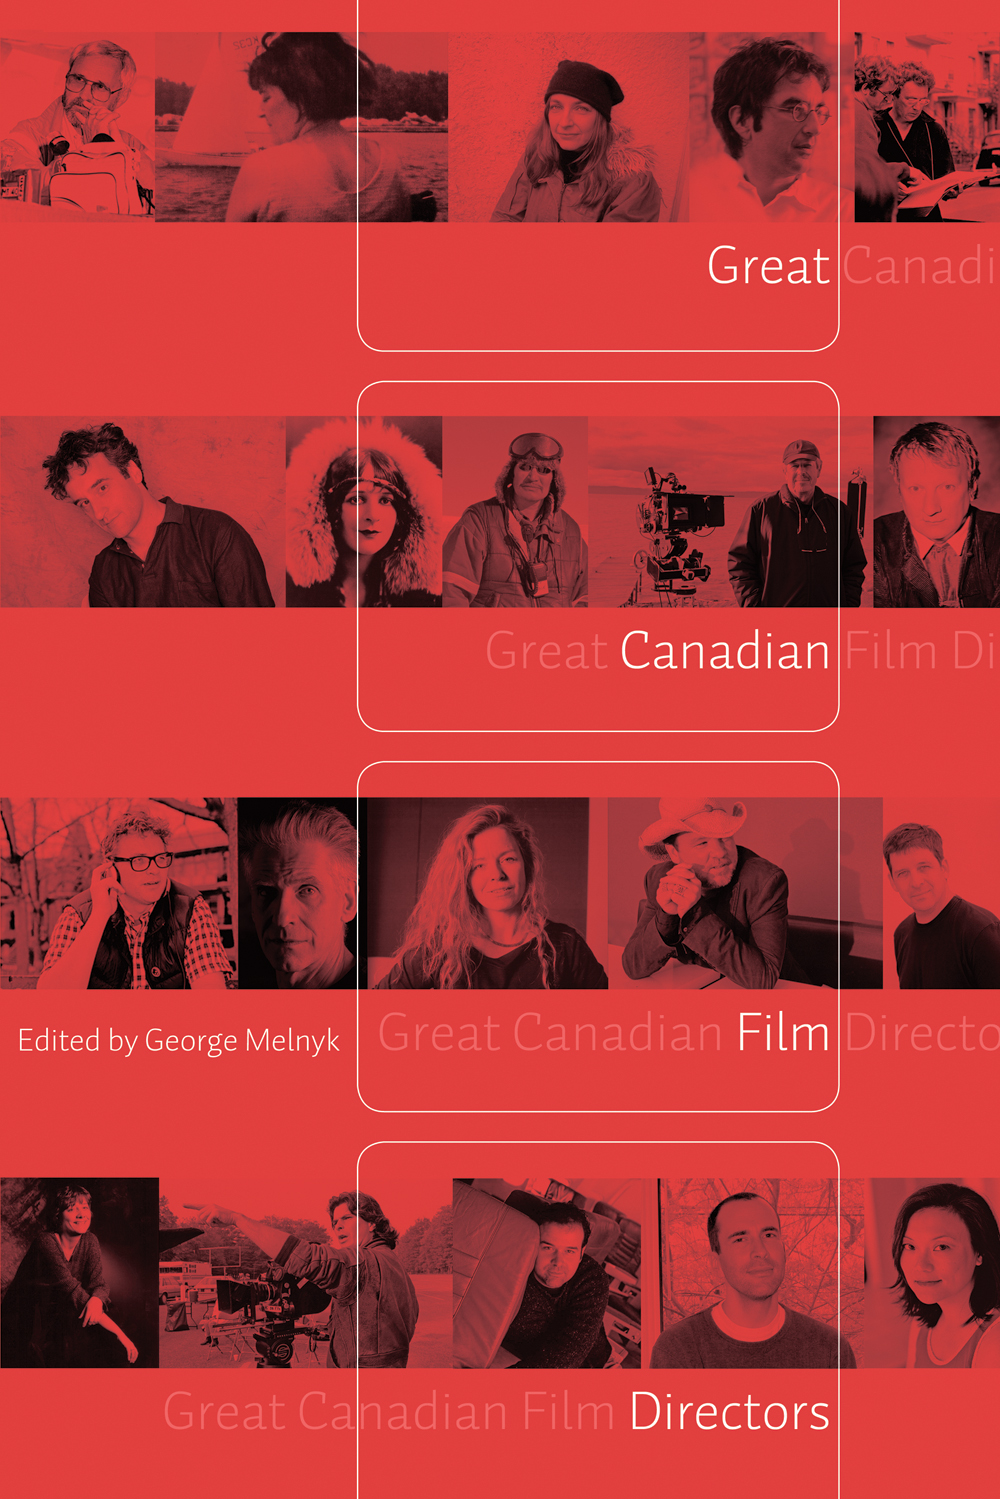 Great Canadian Film Directors